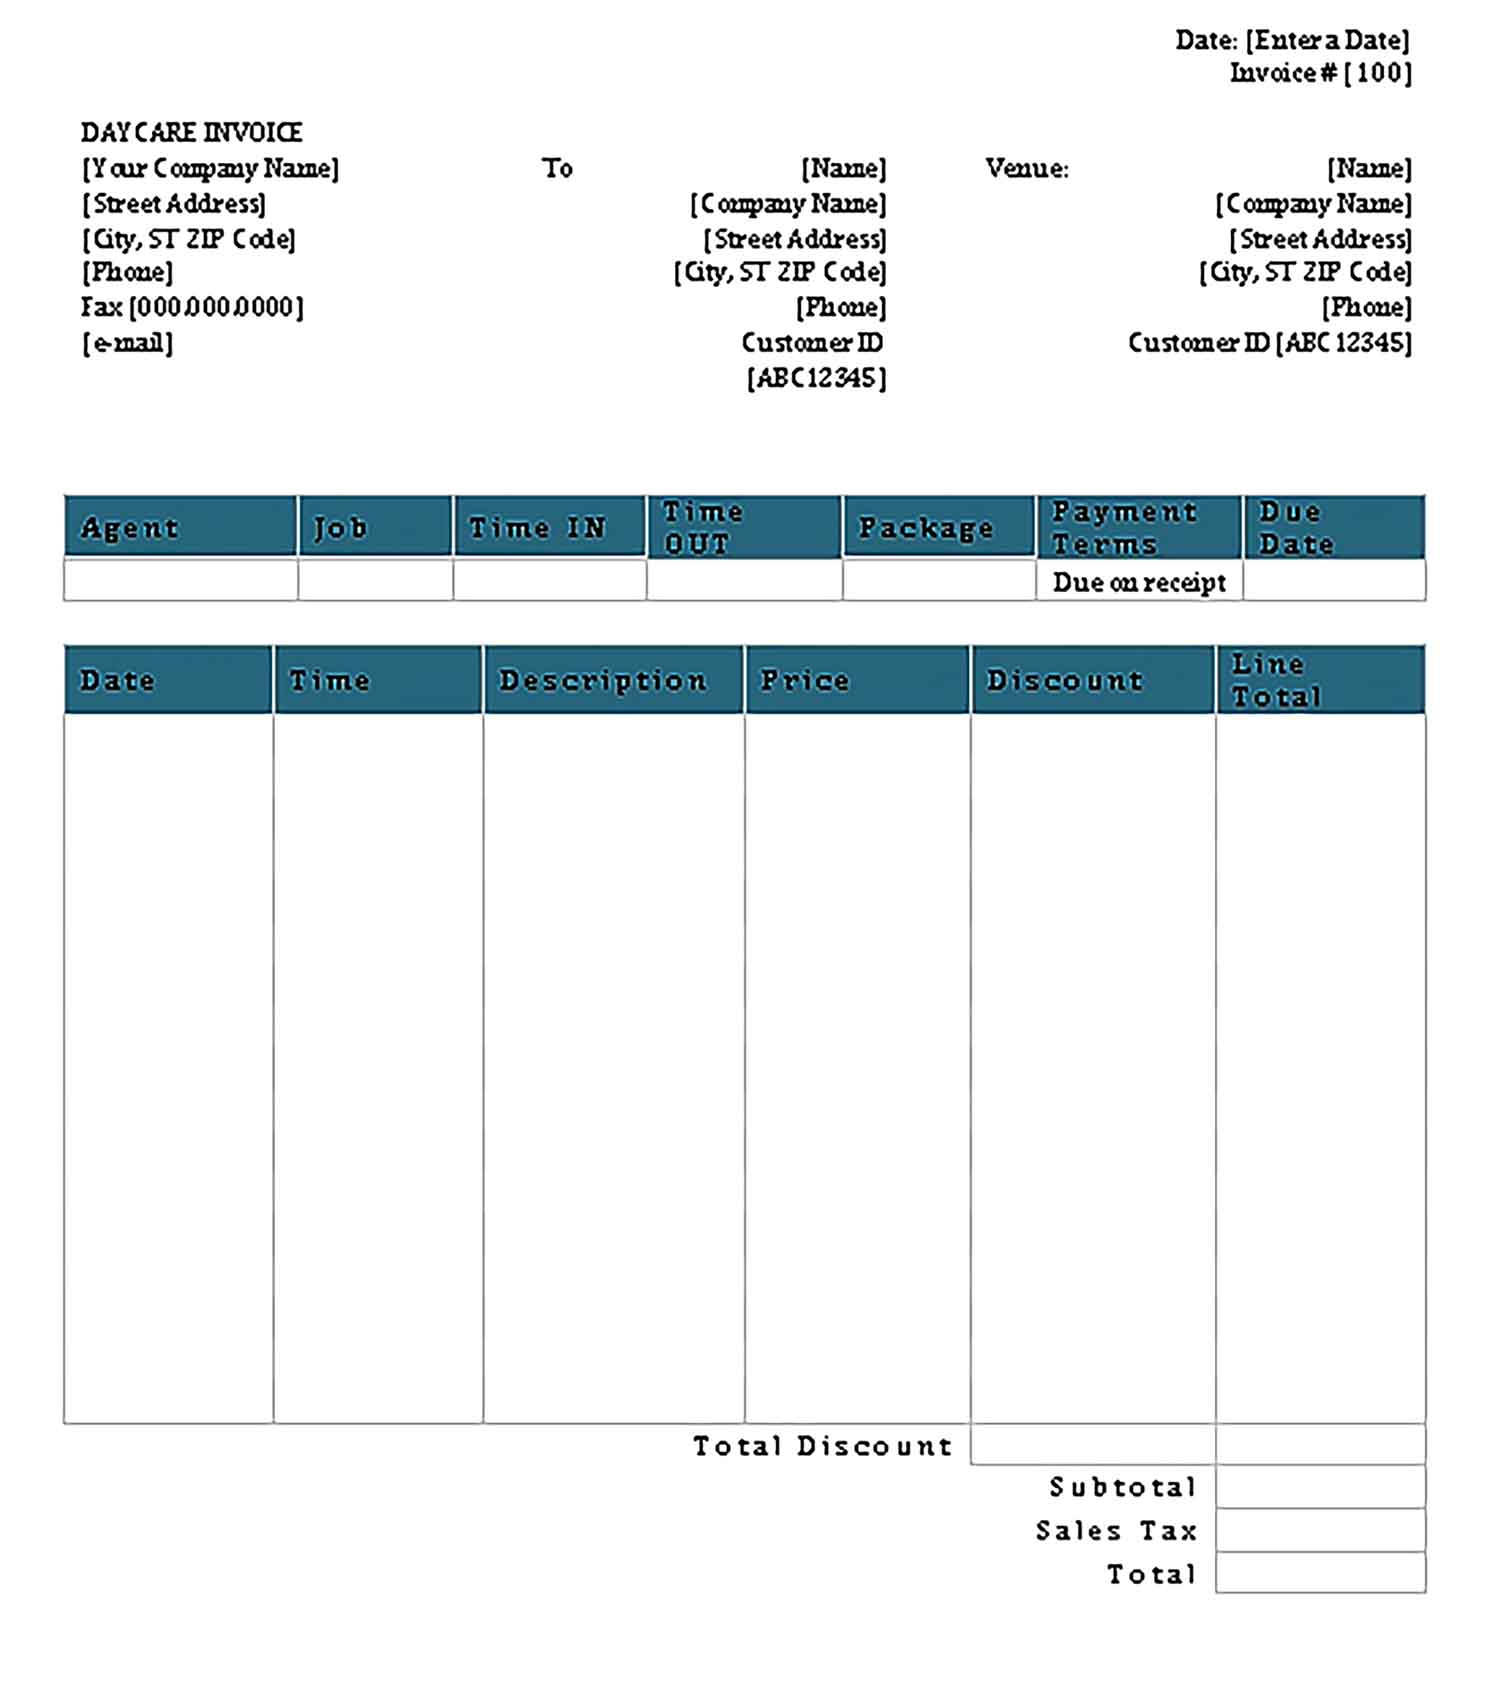 Sample Day Care Invoice Receipt Templates